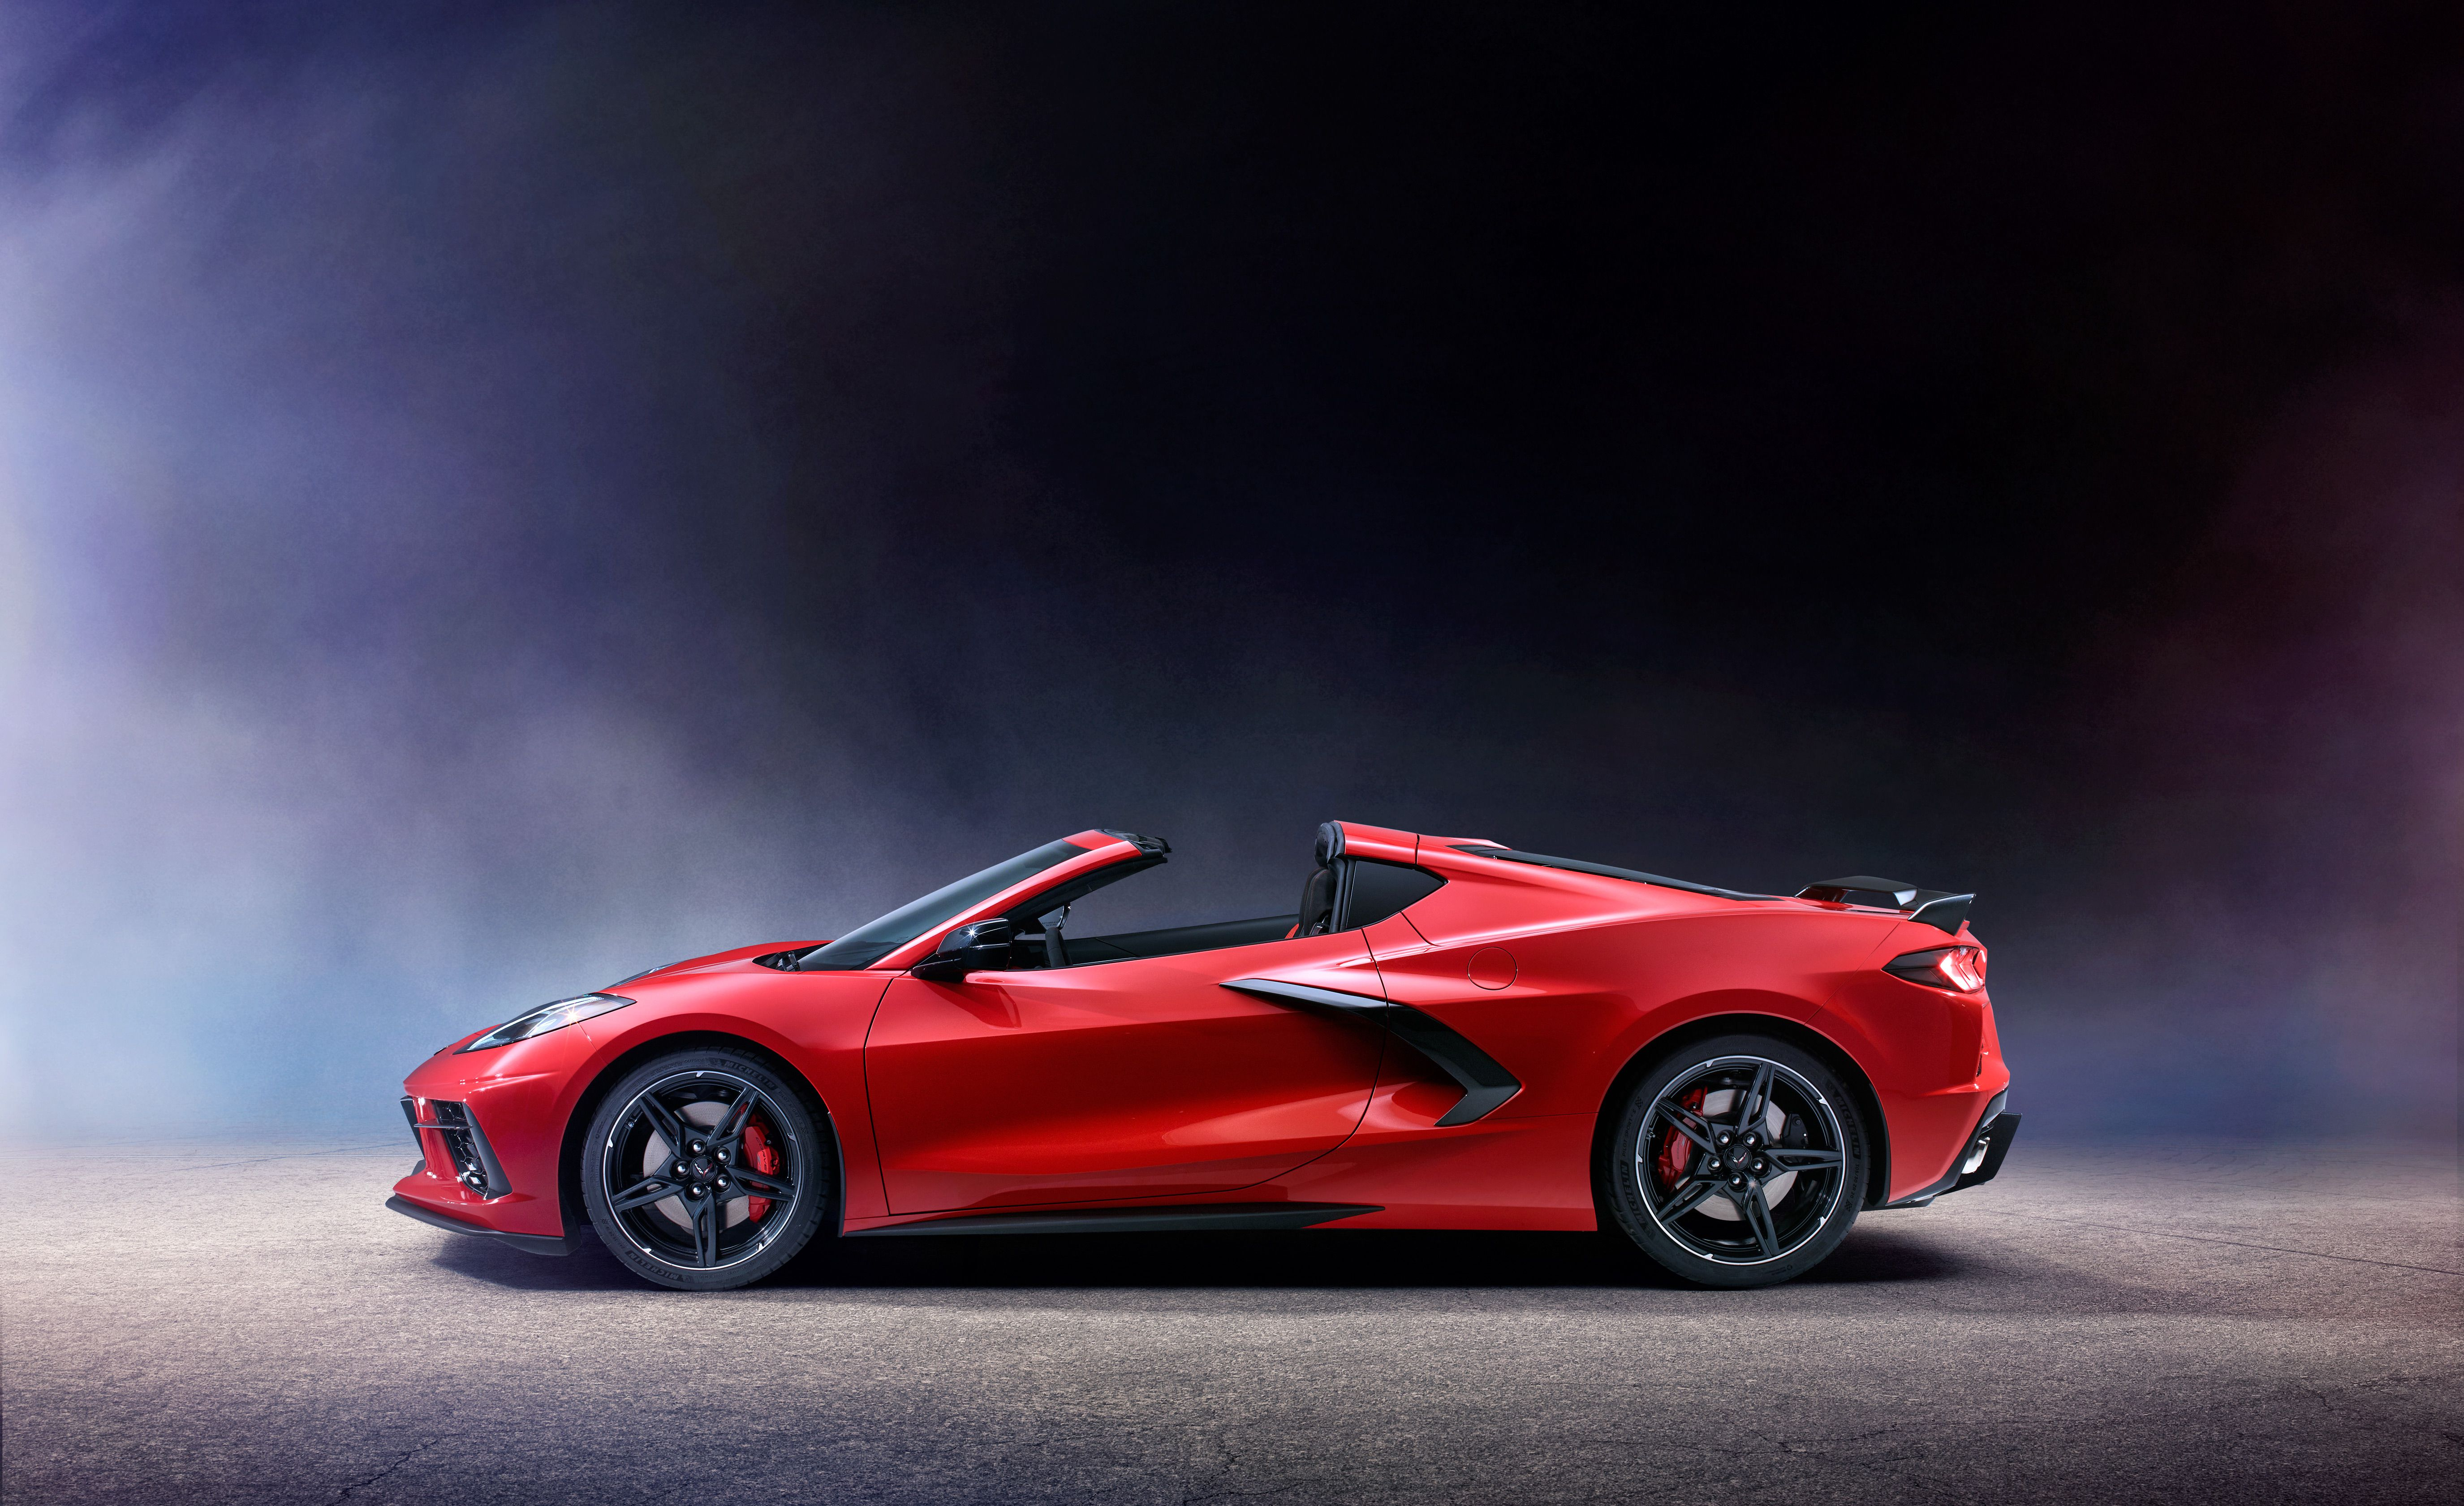 2020 Chevrolet Corvette Stingray C8 New, HD Cars, 4k Wallpapers, Images, Backgrounds, Photos and ...